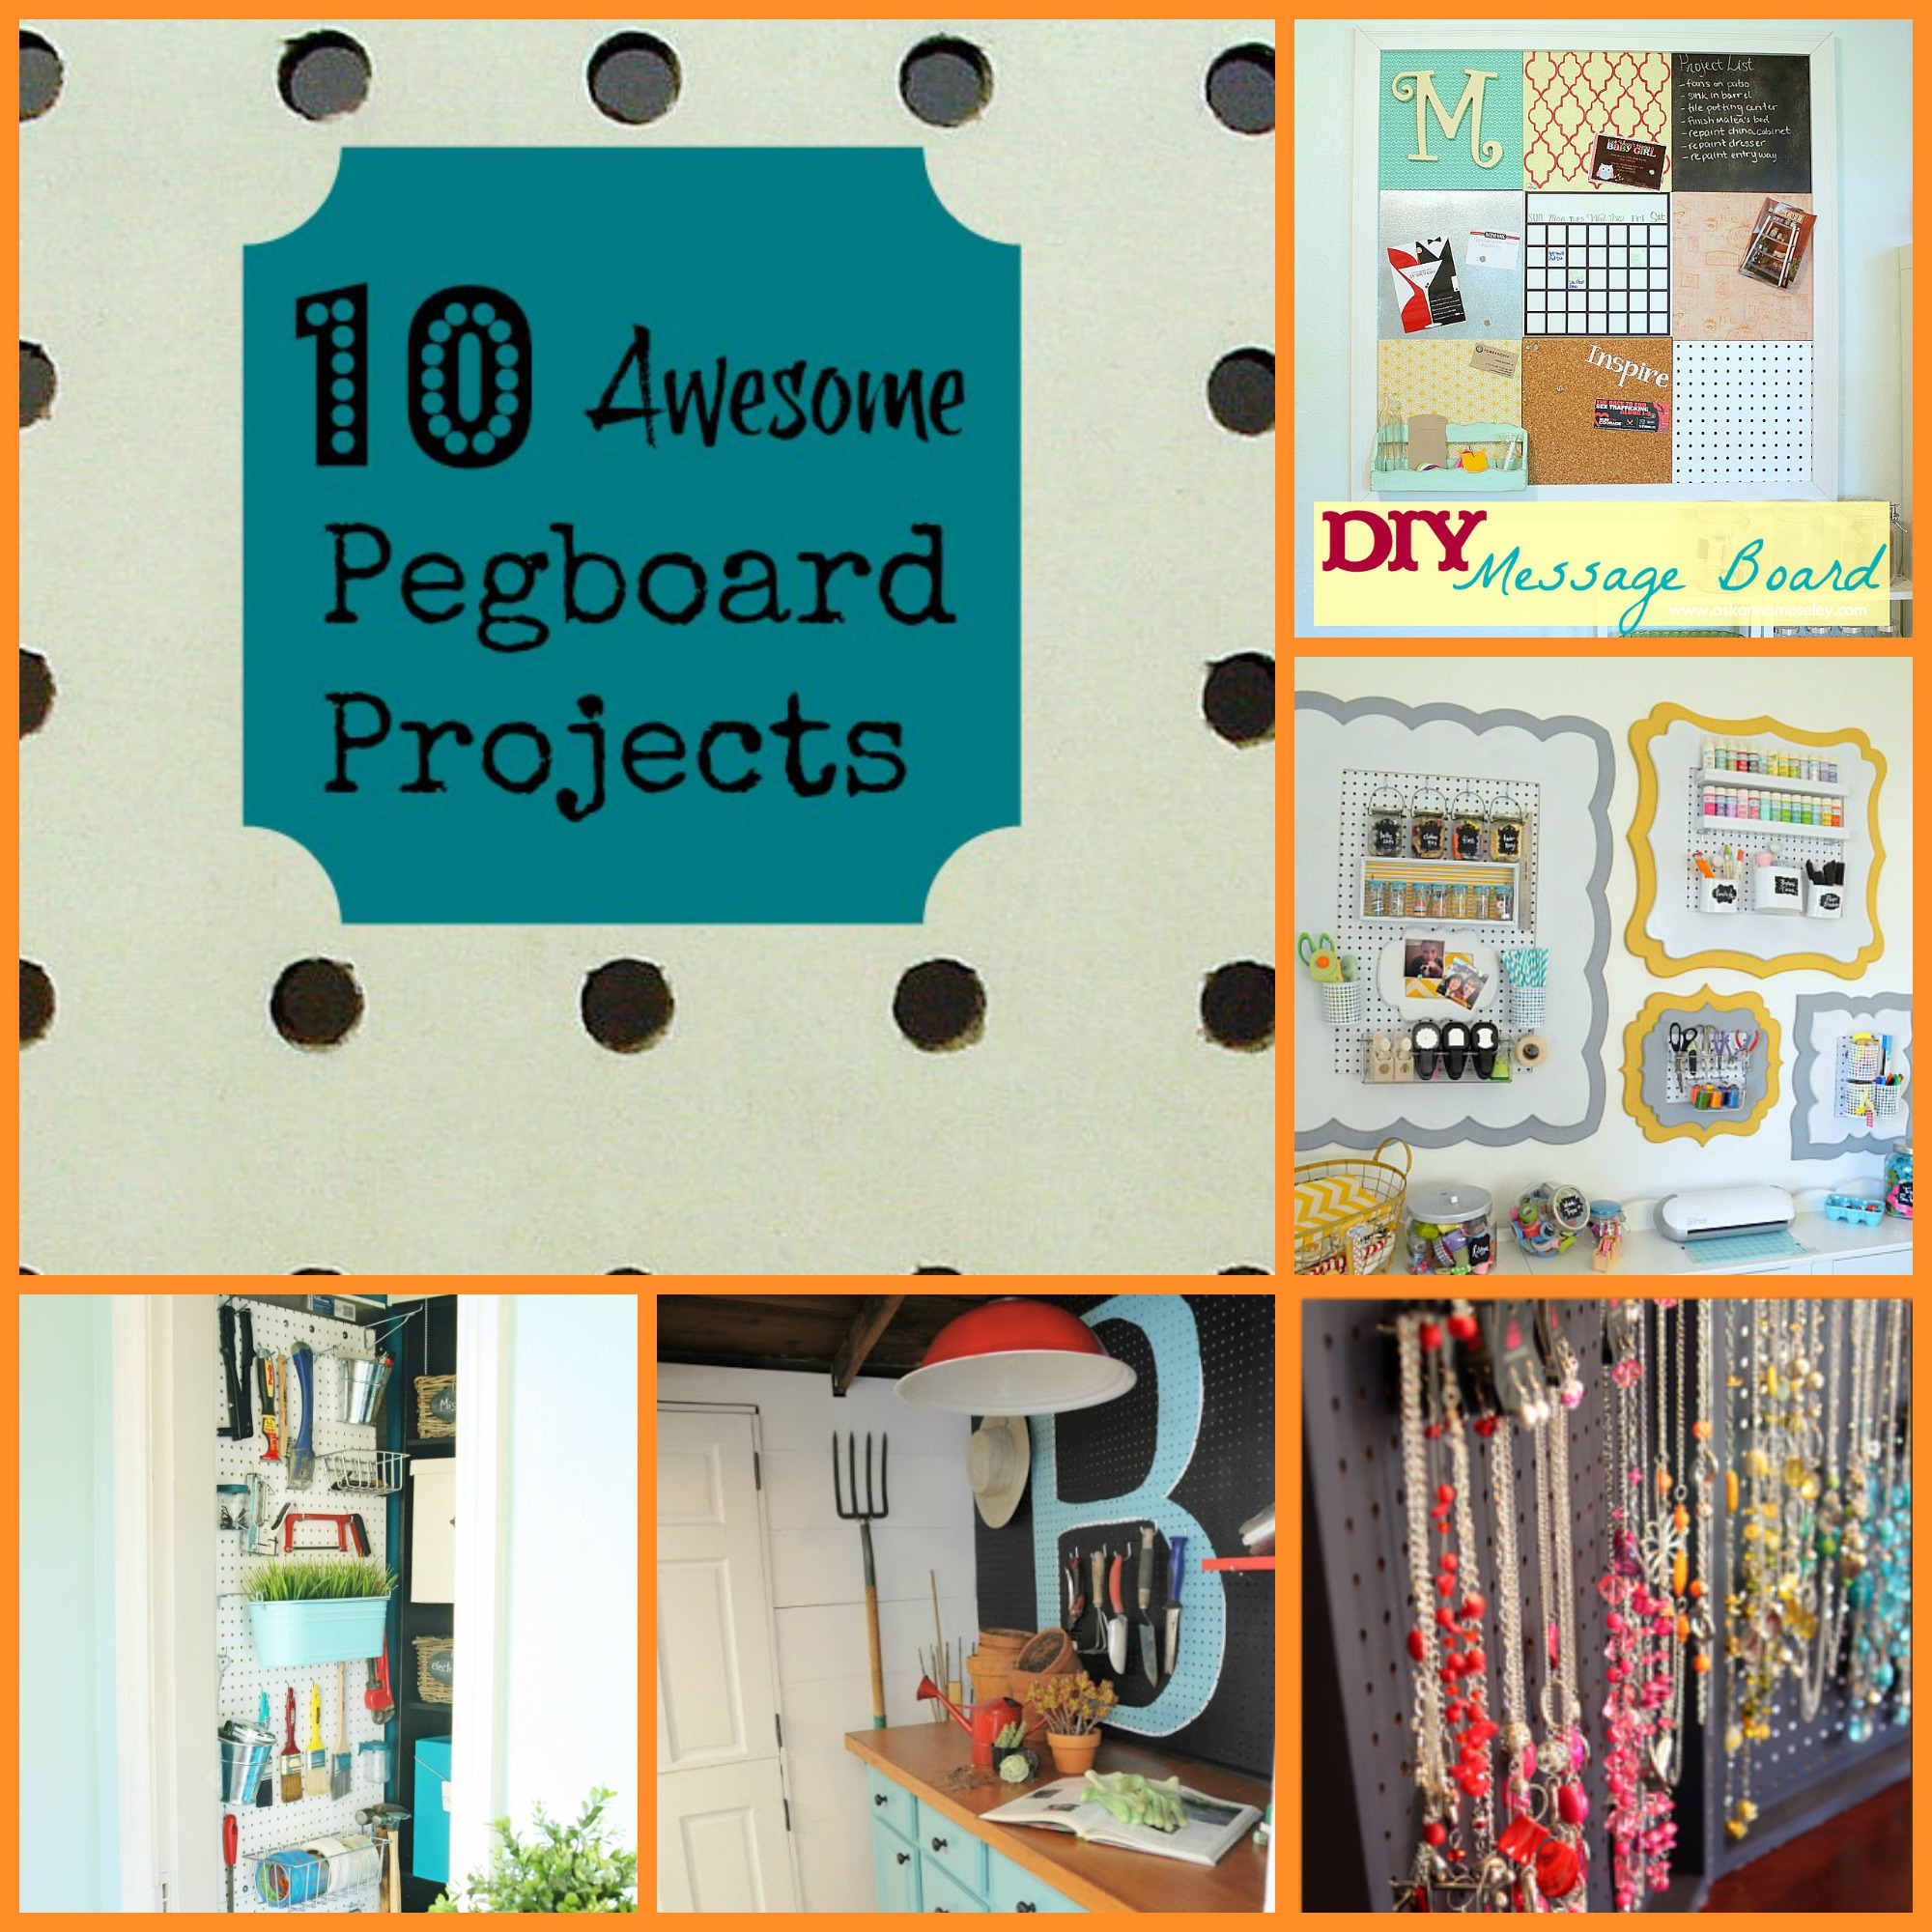 10 Awesome Pegboard Projects - Organize and Decorate Everything